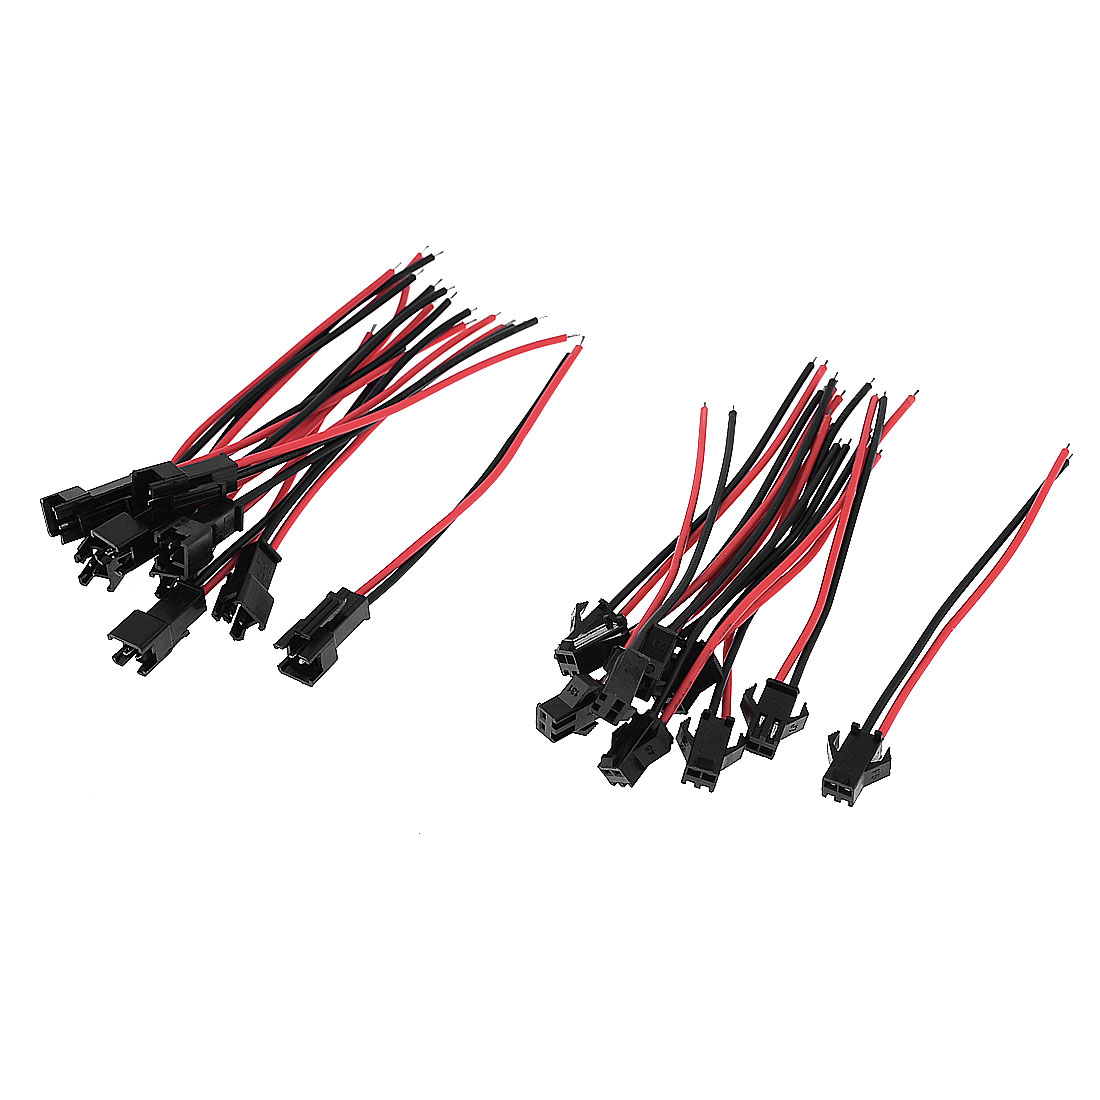 10 Pcs Black Red 8cm Length 2 Terminals EL Wire Cable Connectors